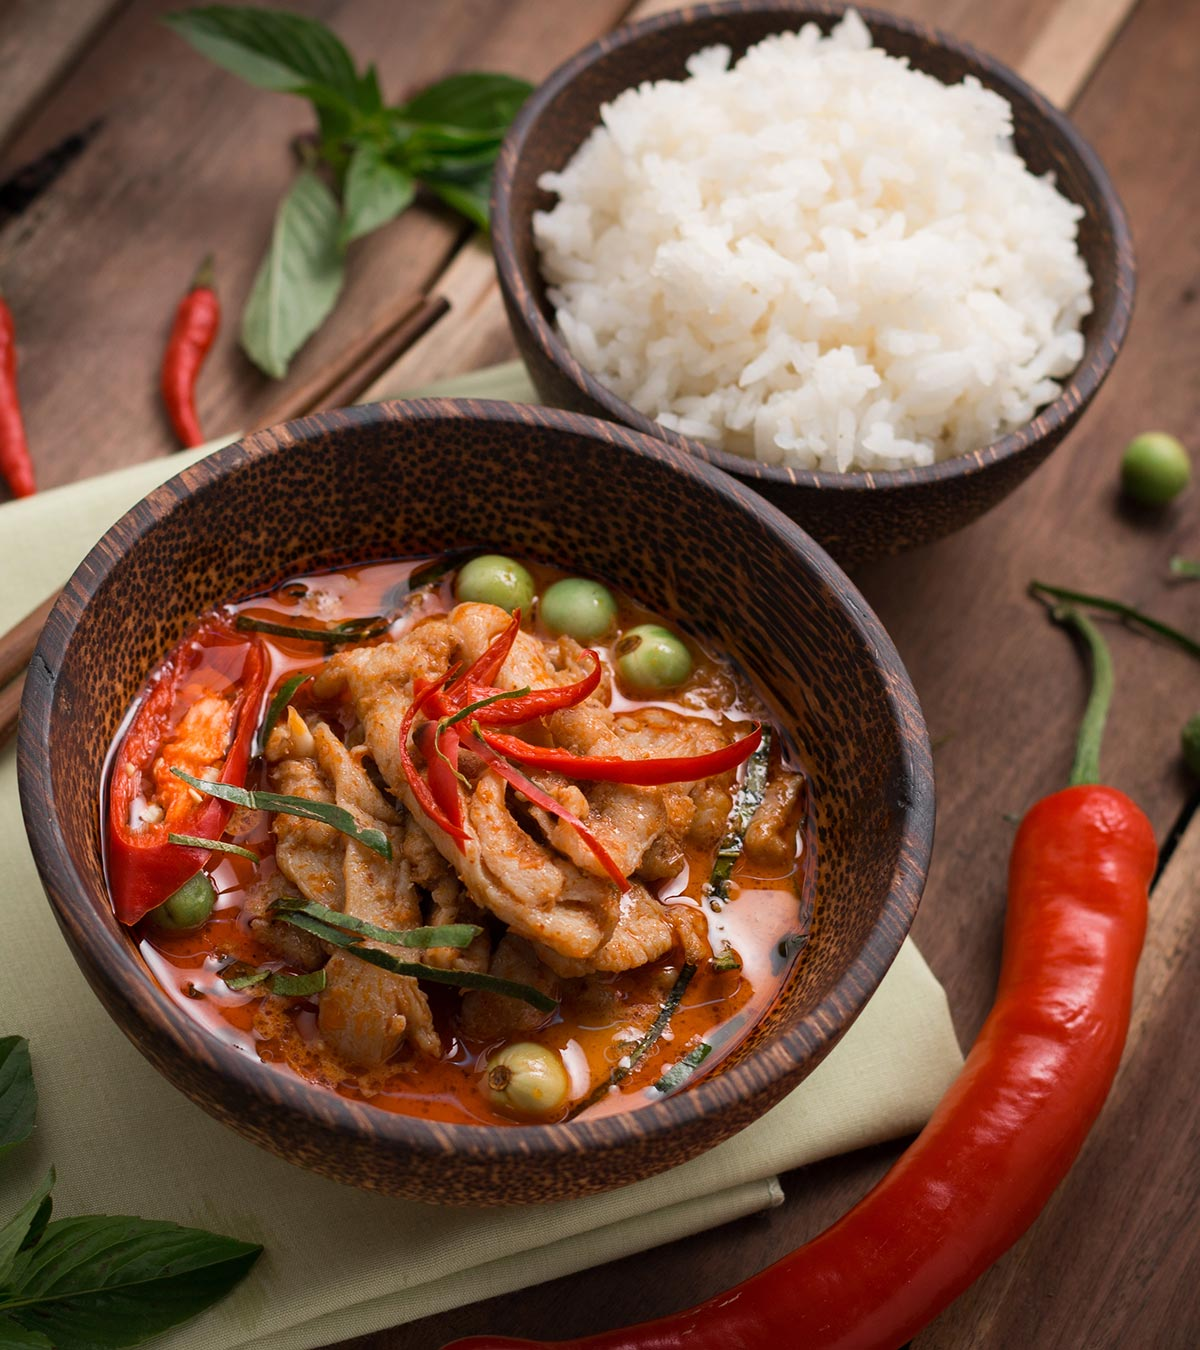 Cuisines With Spicy Food Is It Safe To Eat Spicy Food During Pregnancy